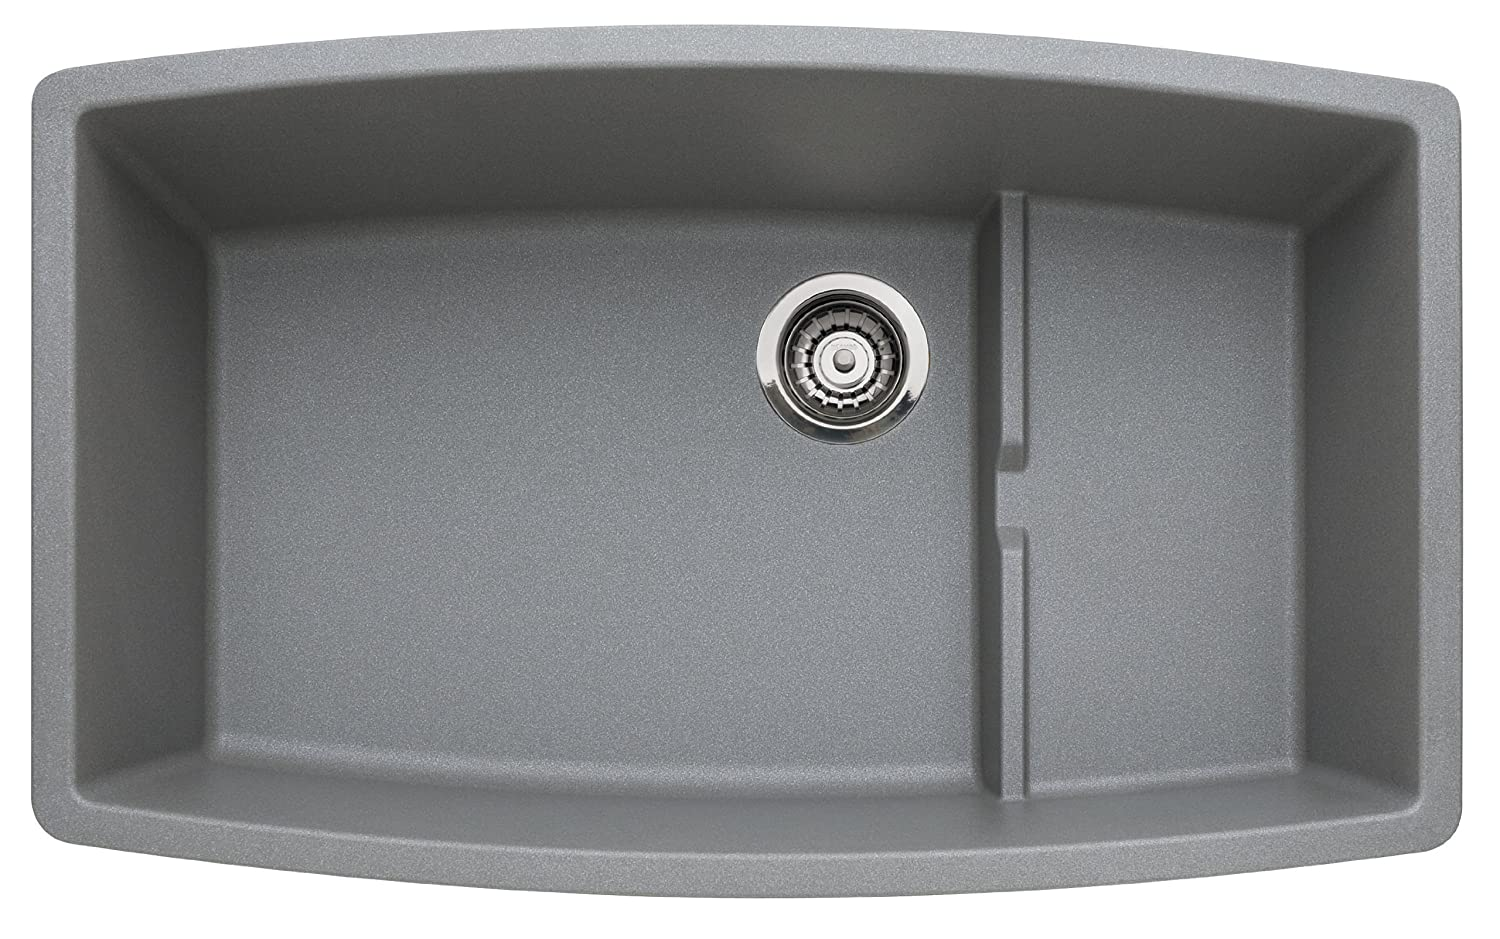 Granite composite sinks pros and cons - Blanco 440067